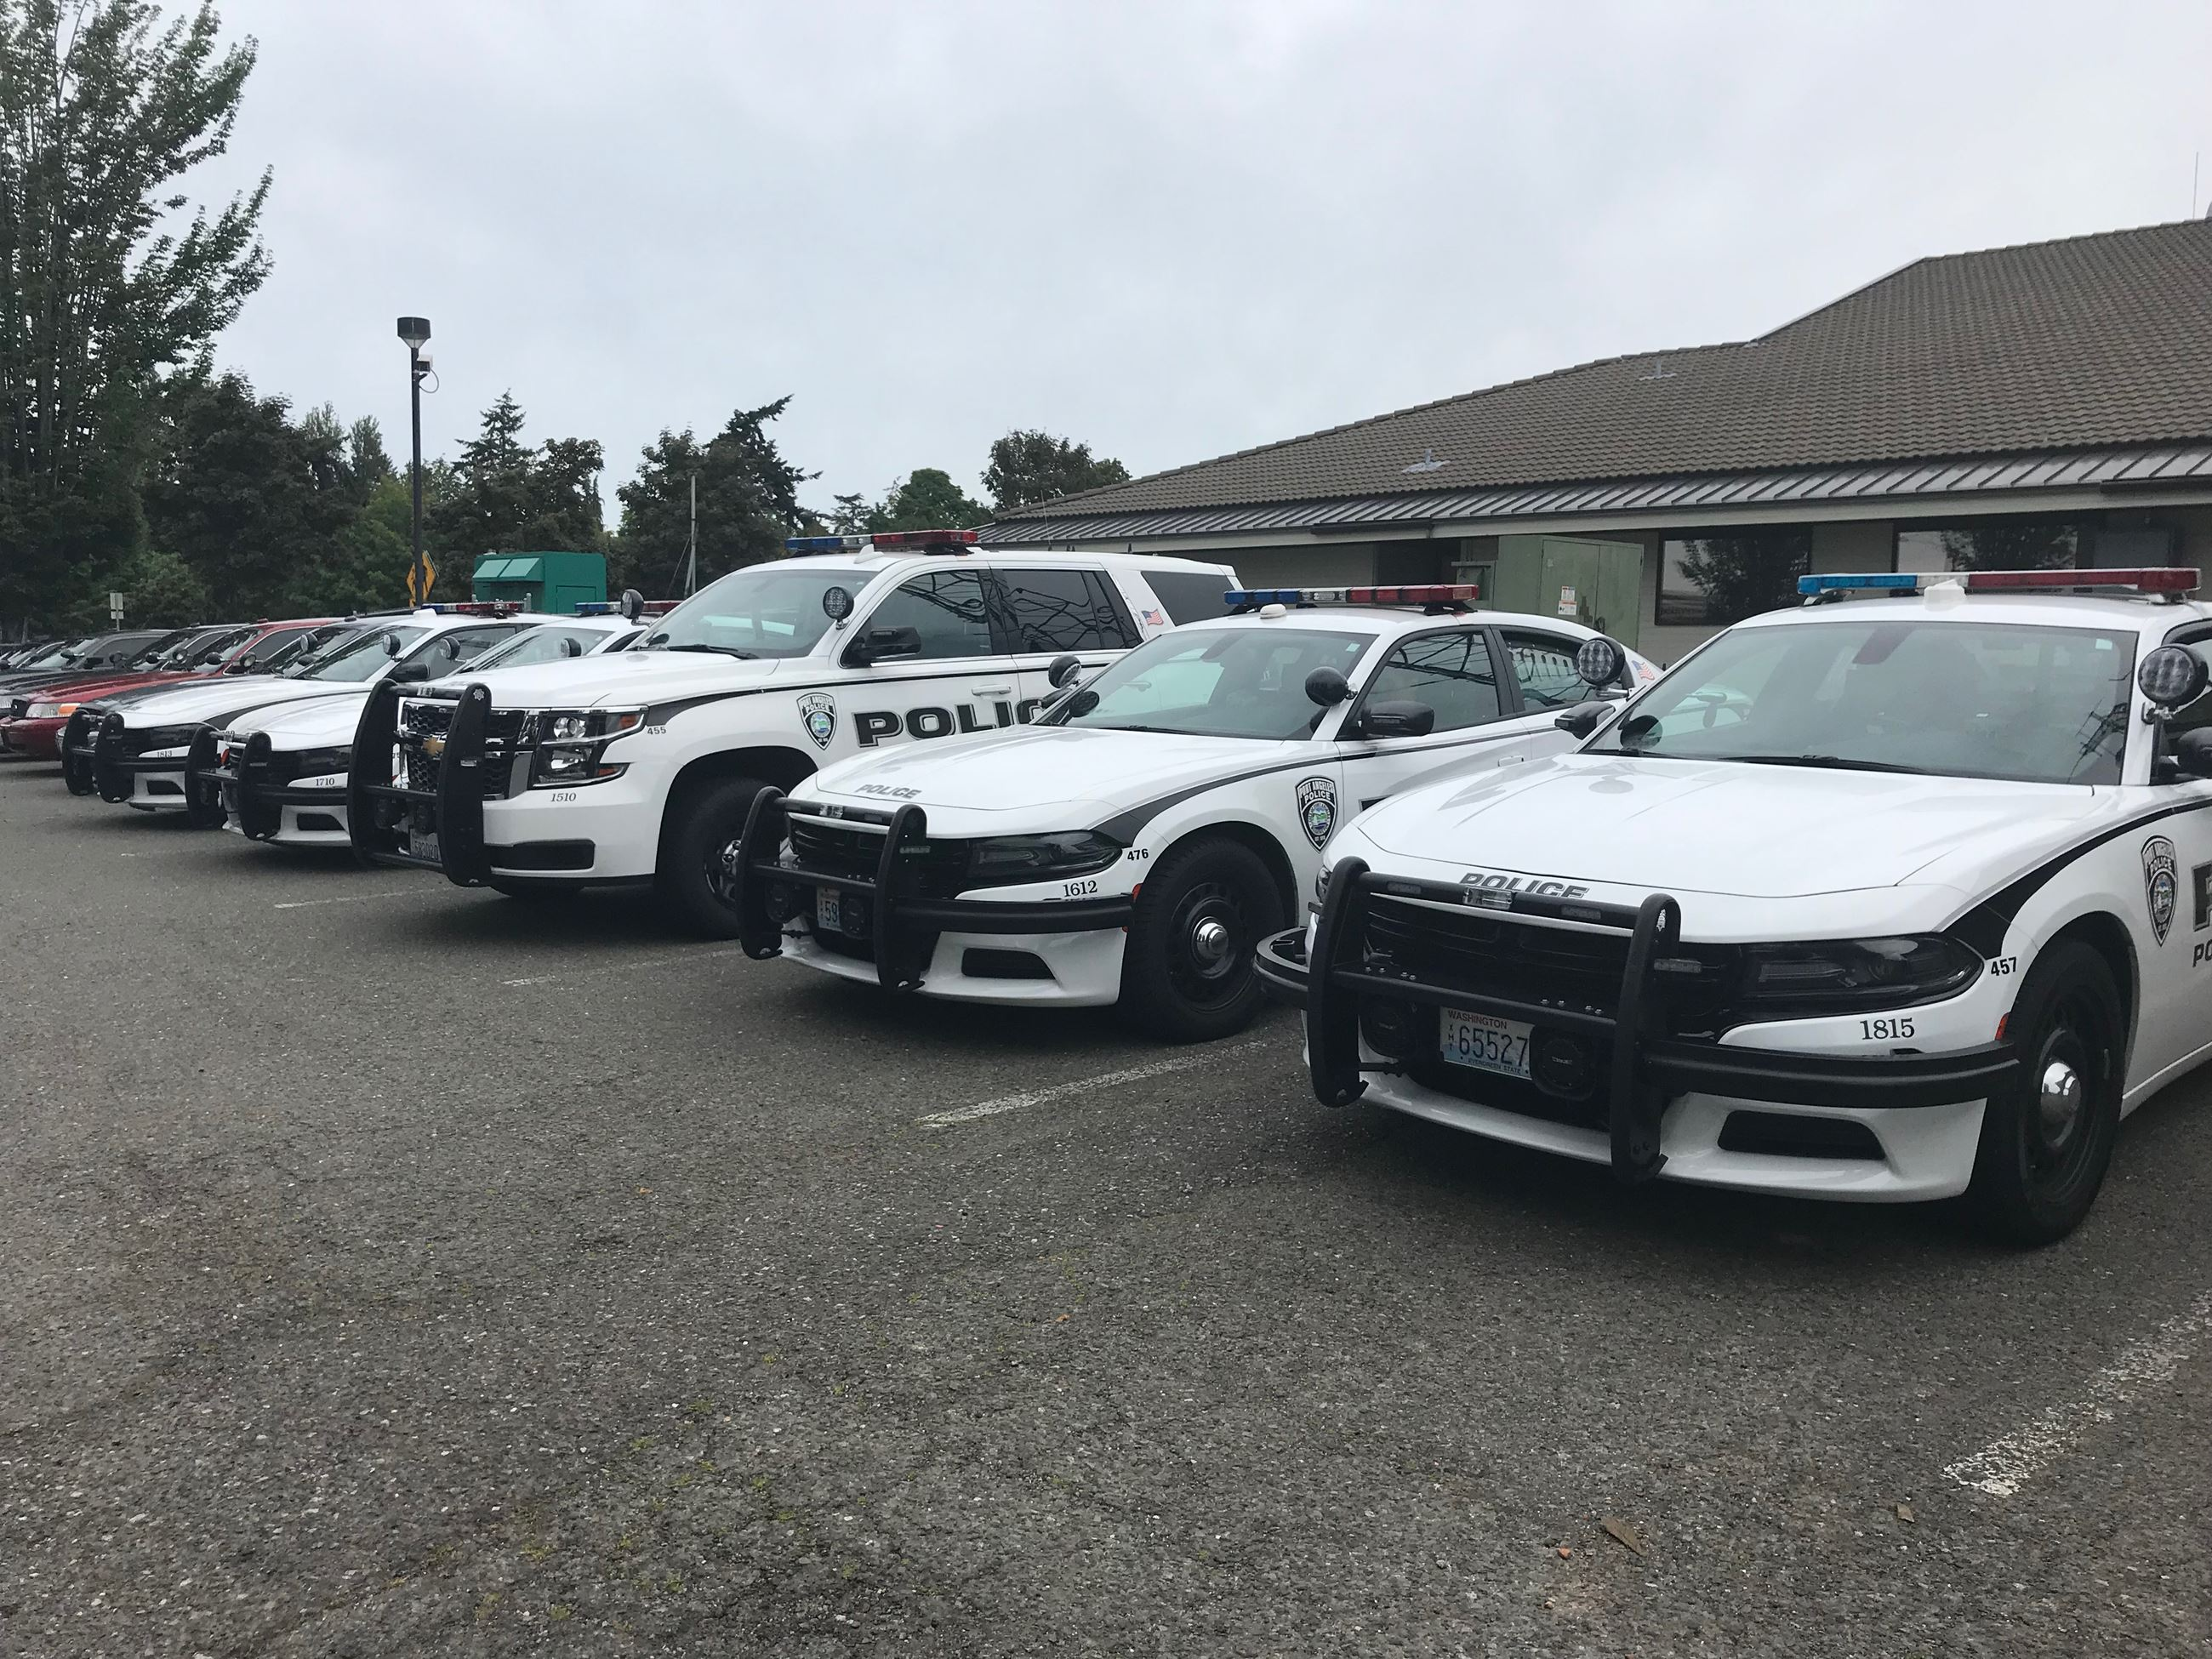 Police Department Squad Cars